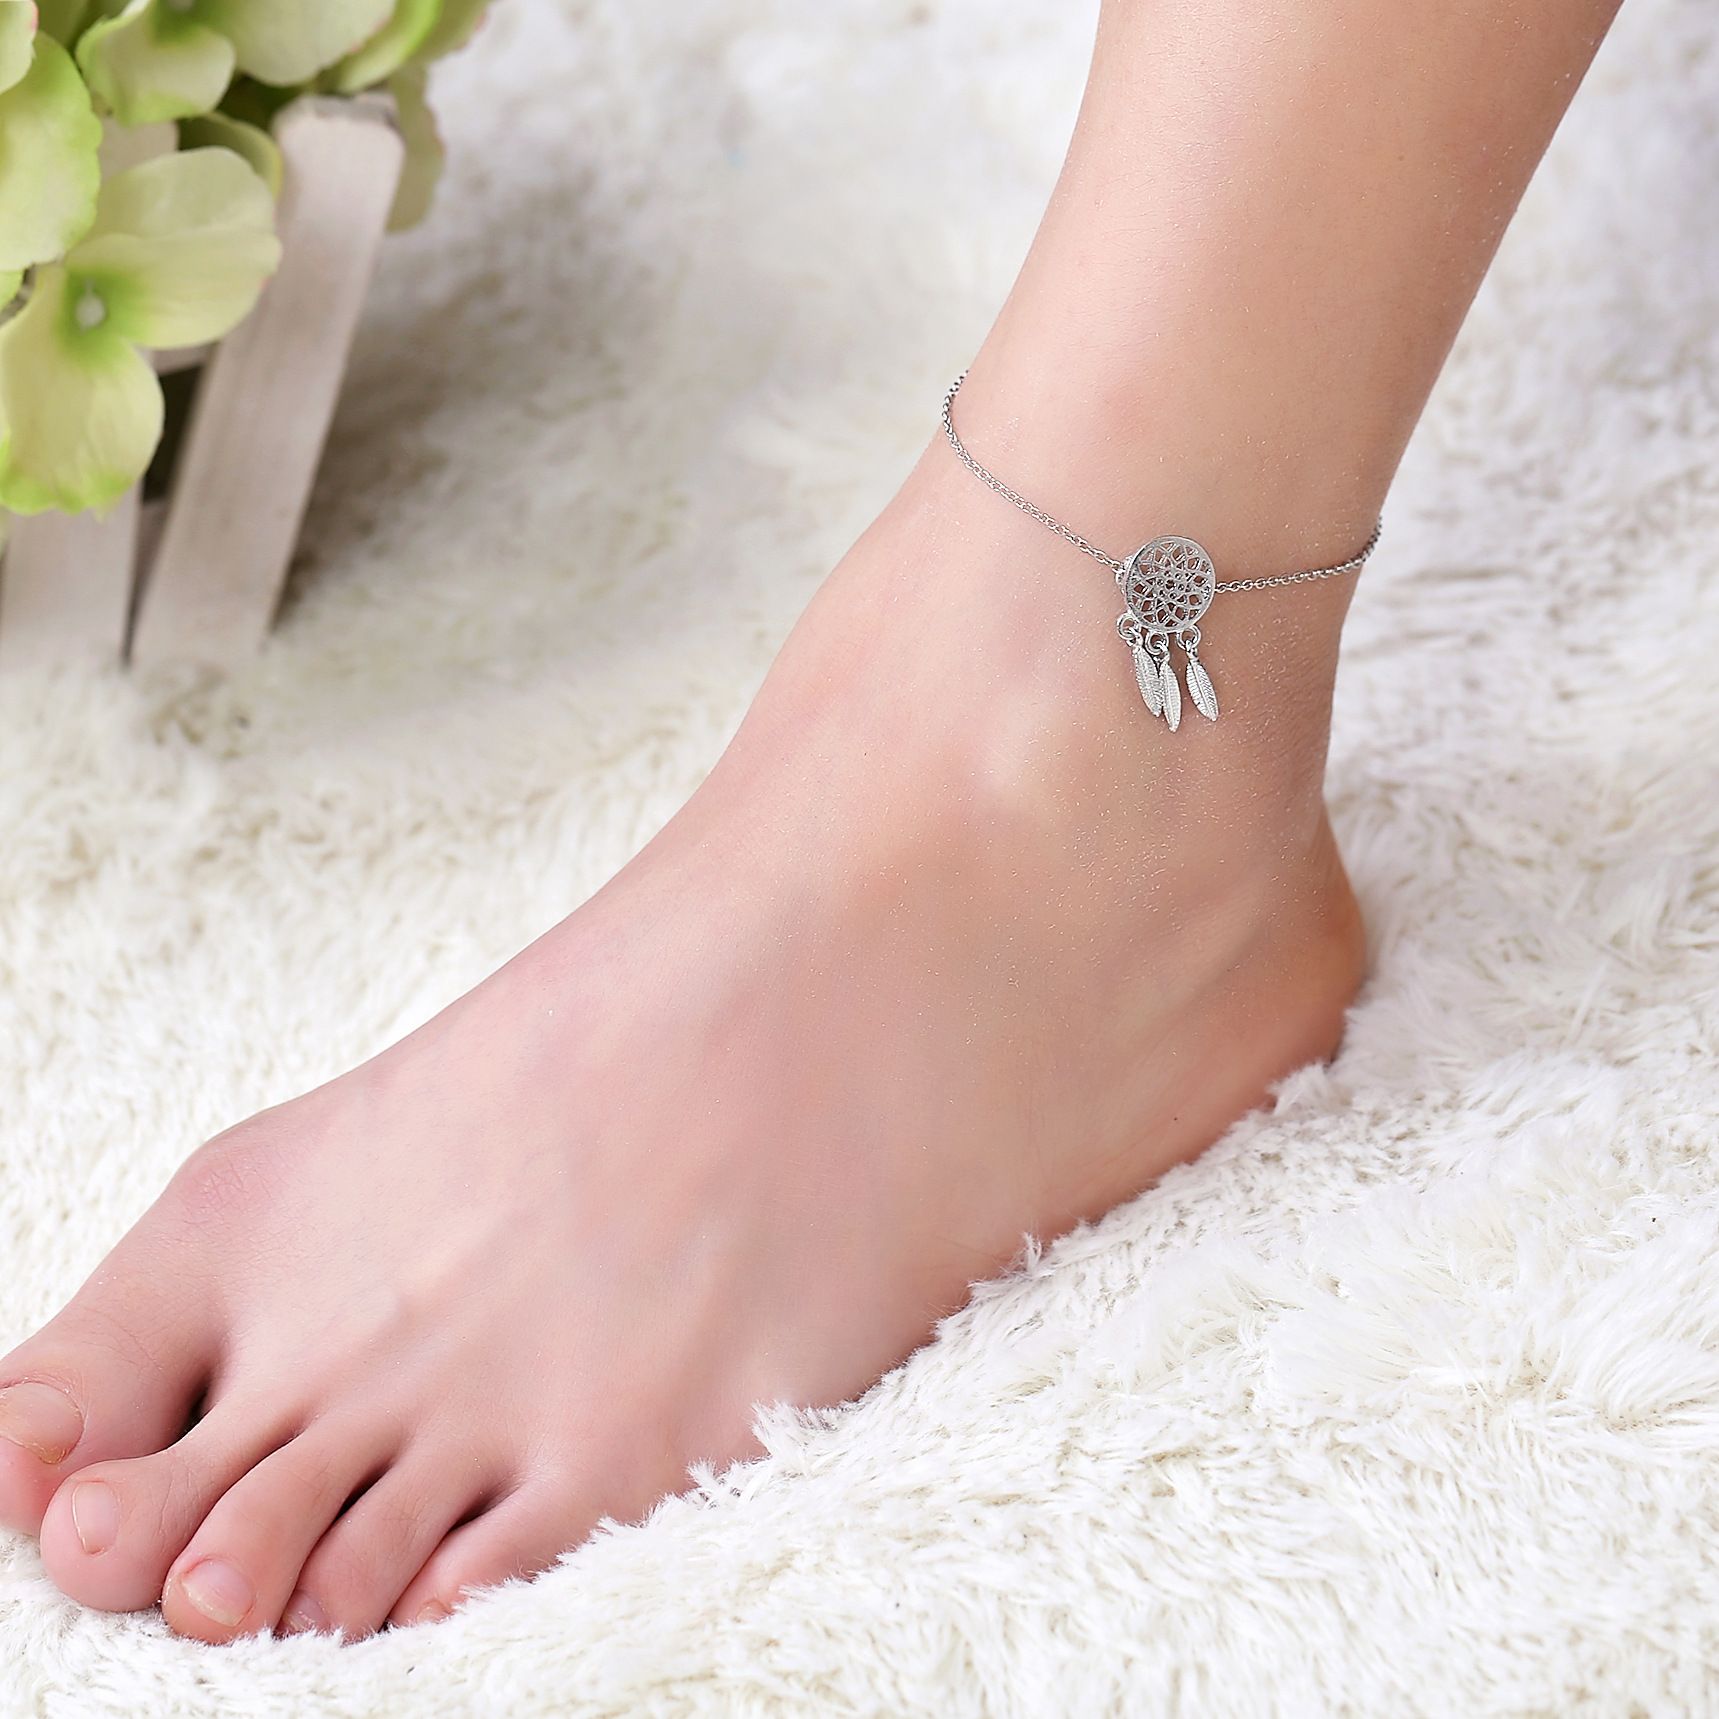 Dream Catcher Feather Tassels Anklet Bracelet 925 Silver Women Girl Lover Barefoot Anklet Fashion Foot Jewelry 024